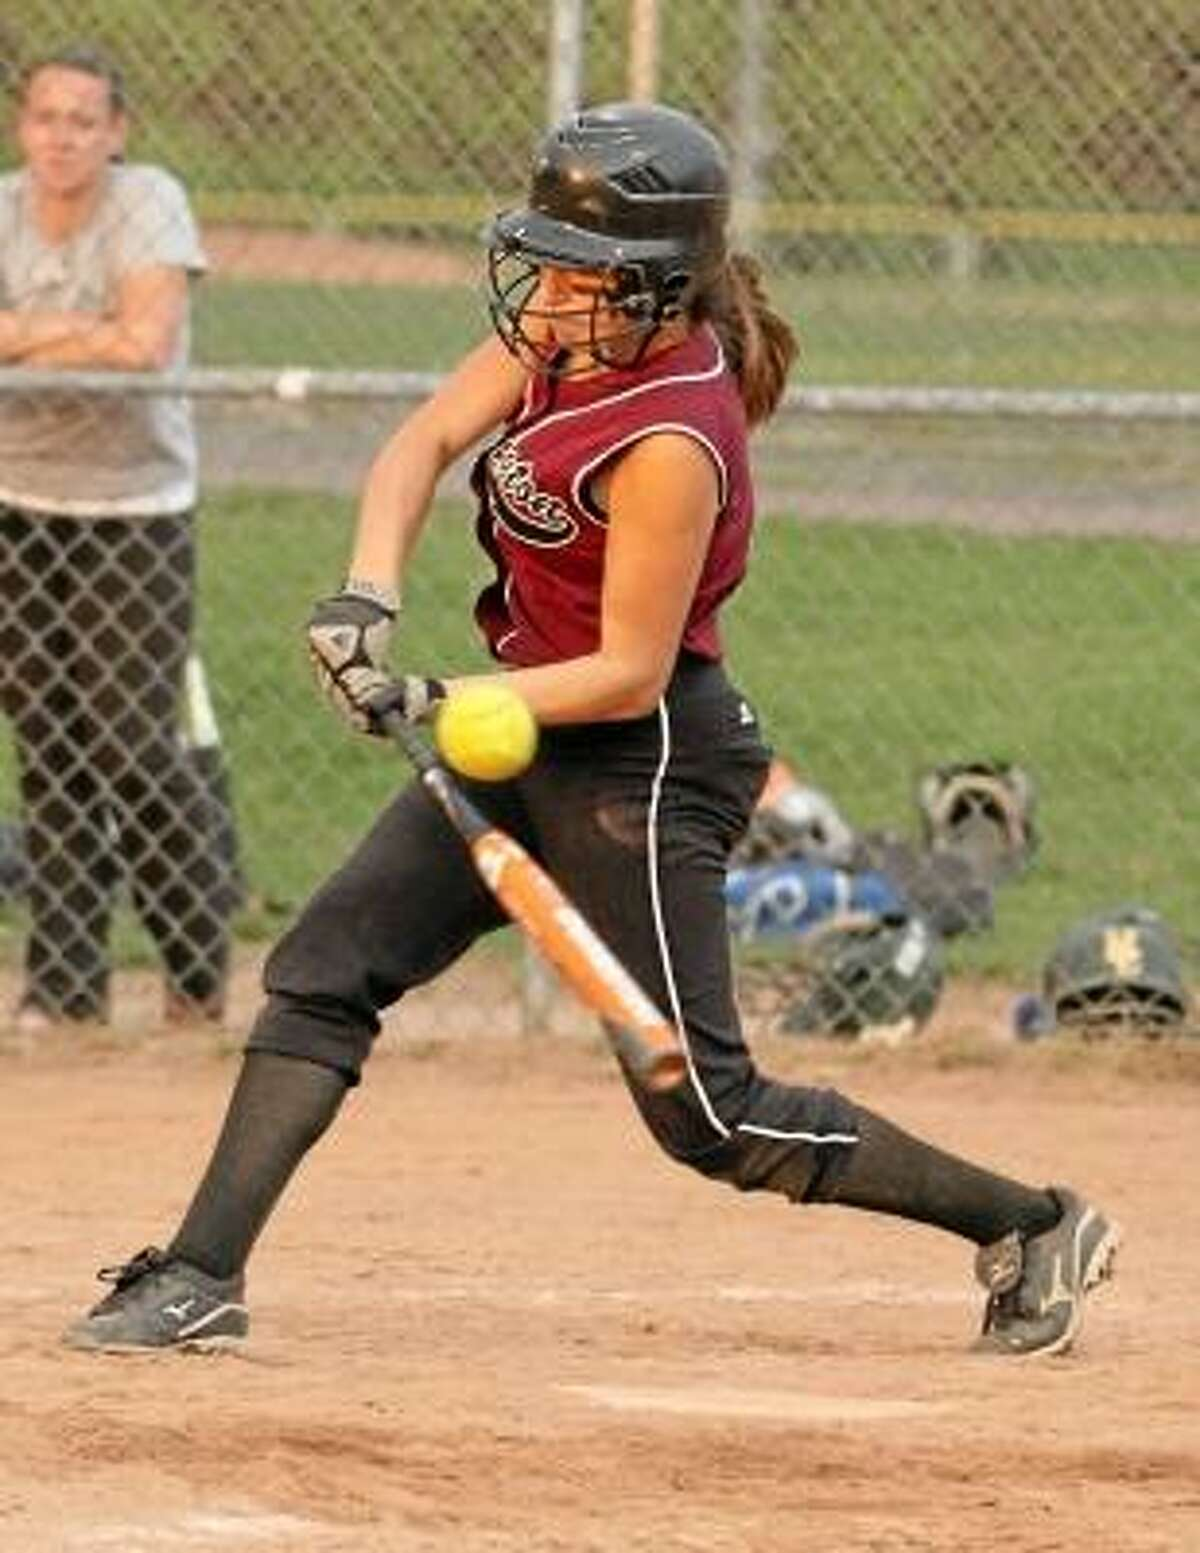 Photo by Marianne Killackey/Special to Register Citizen Torrington's Brittany Young hits a double in the Raiders' 5-1 victory against Holy Cross